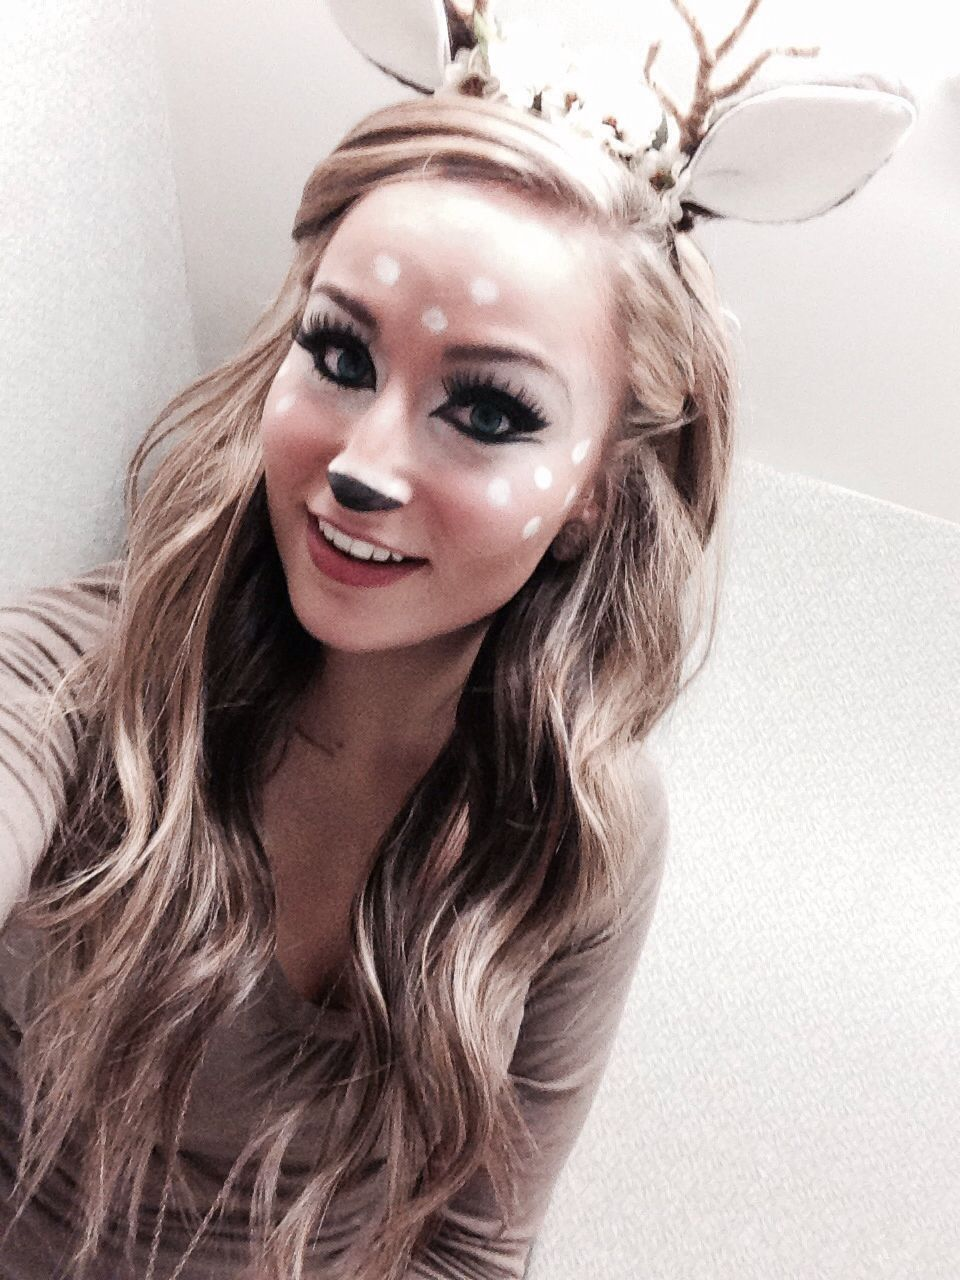 50 Pretty Halloween Makeup Ideas You'll Love | Deer costume and ...